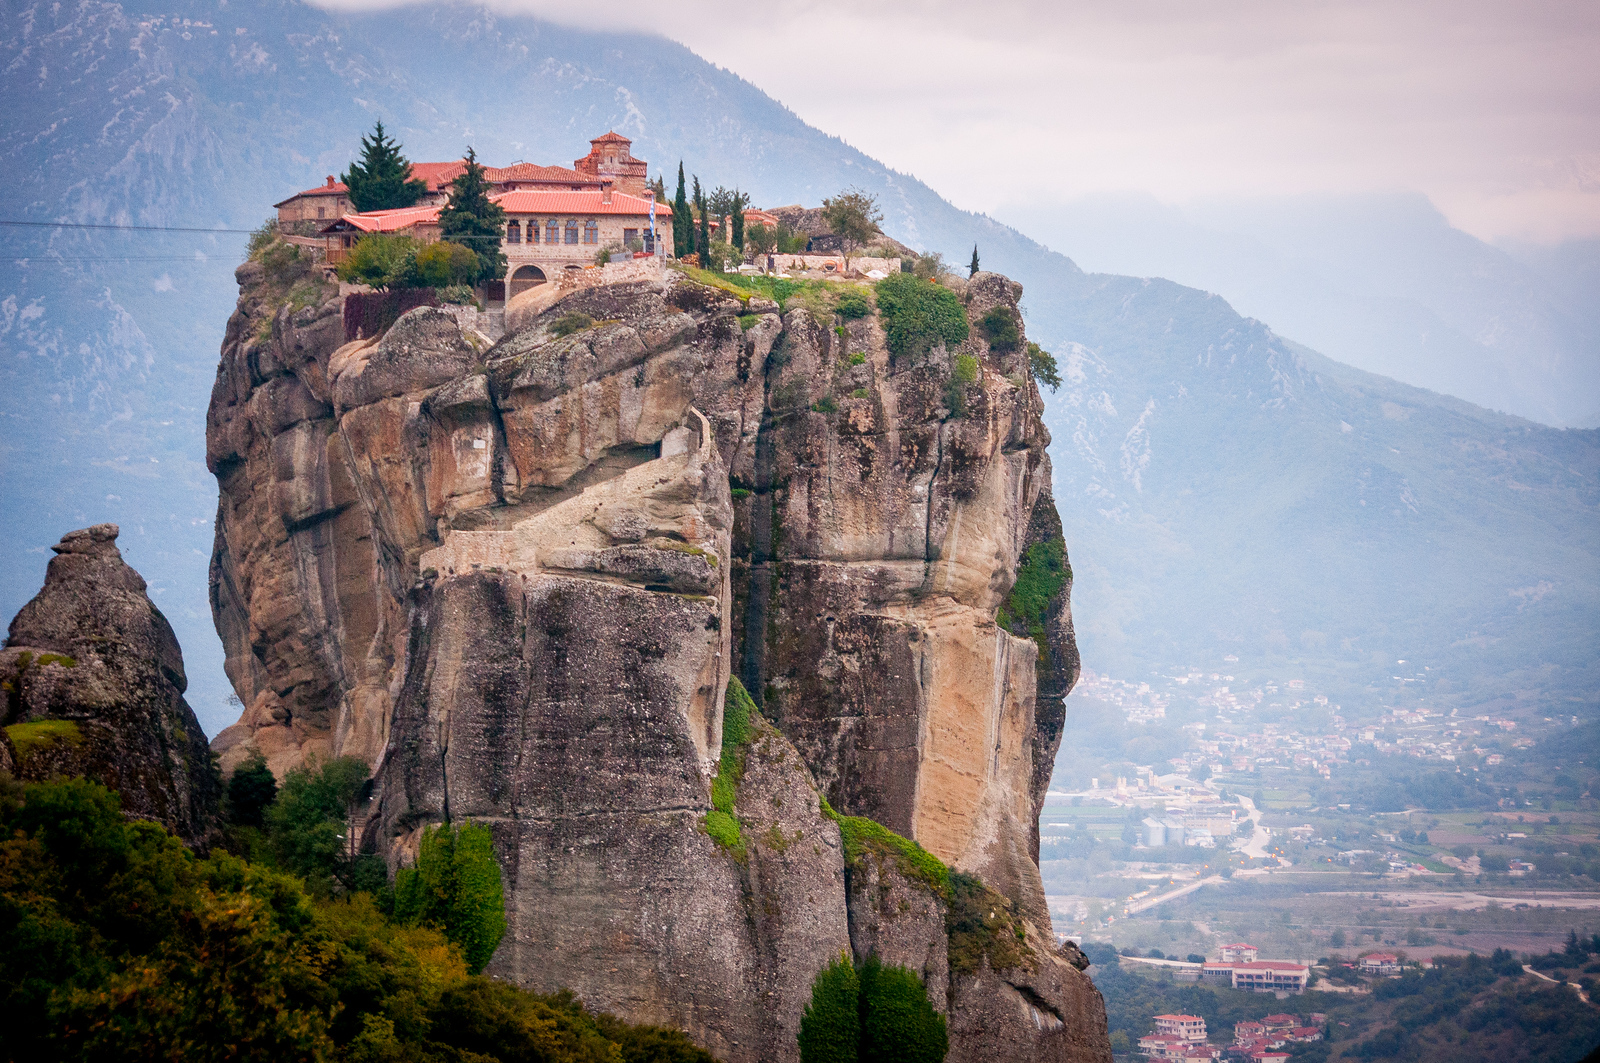 Monasteries of Meteora, a UNESCO World Heritage Site in Greece